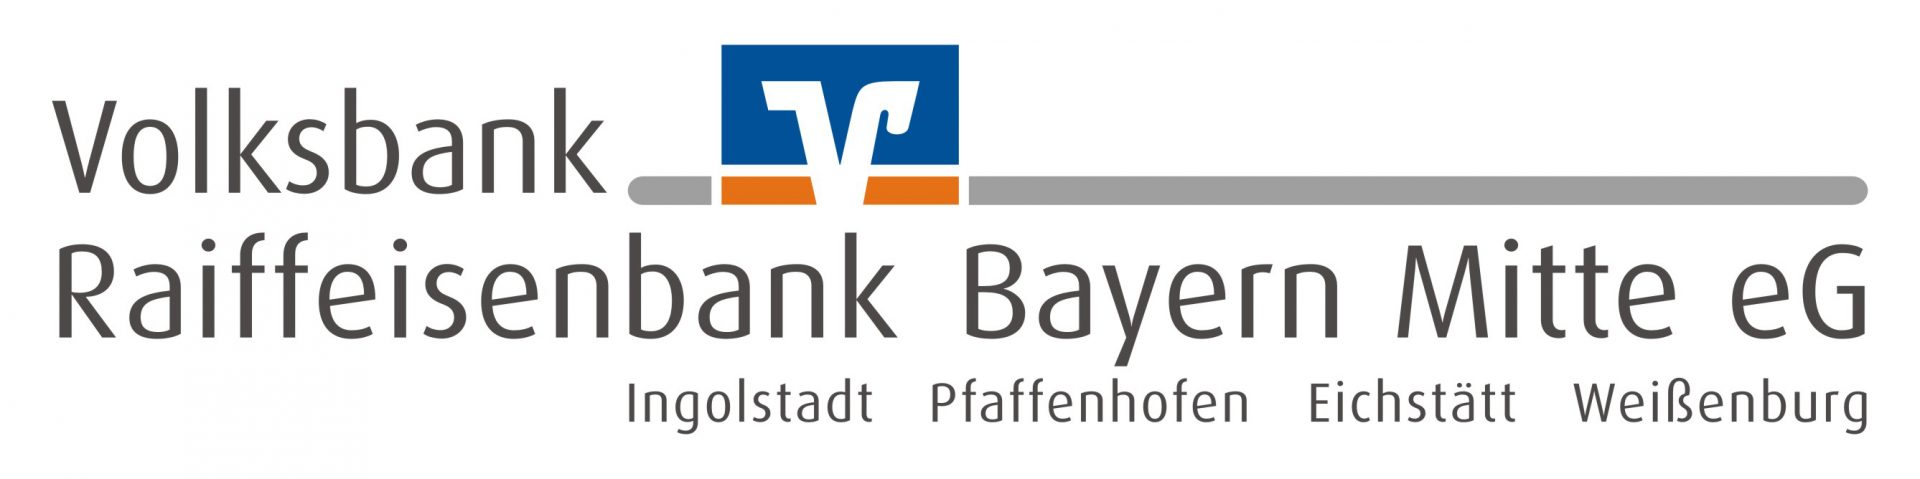 https://www.vr-bayernmitte.de/privatkunden.html